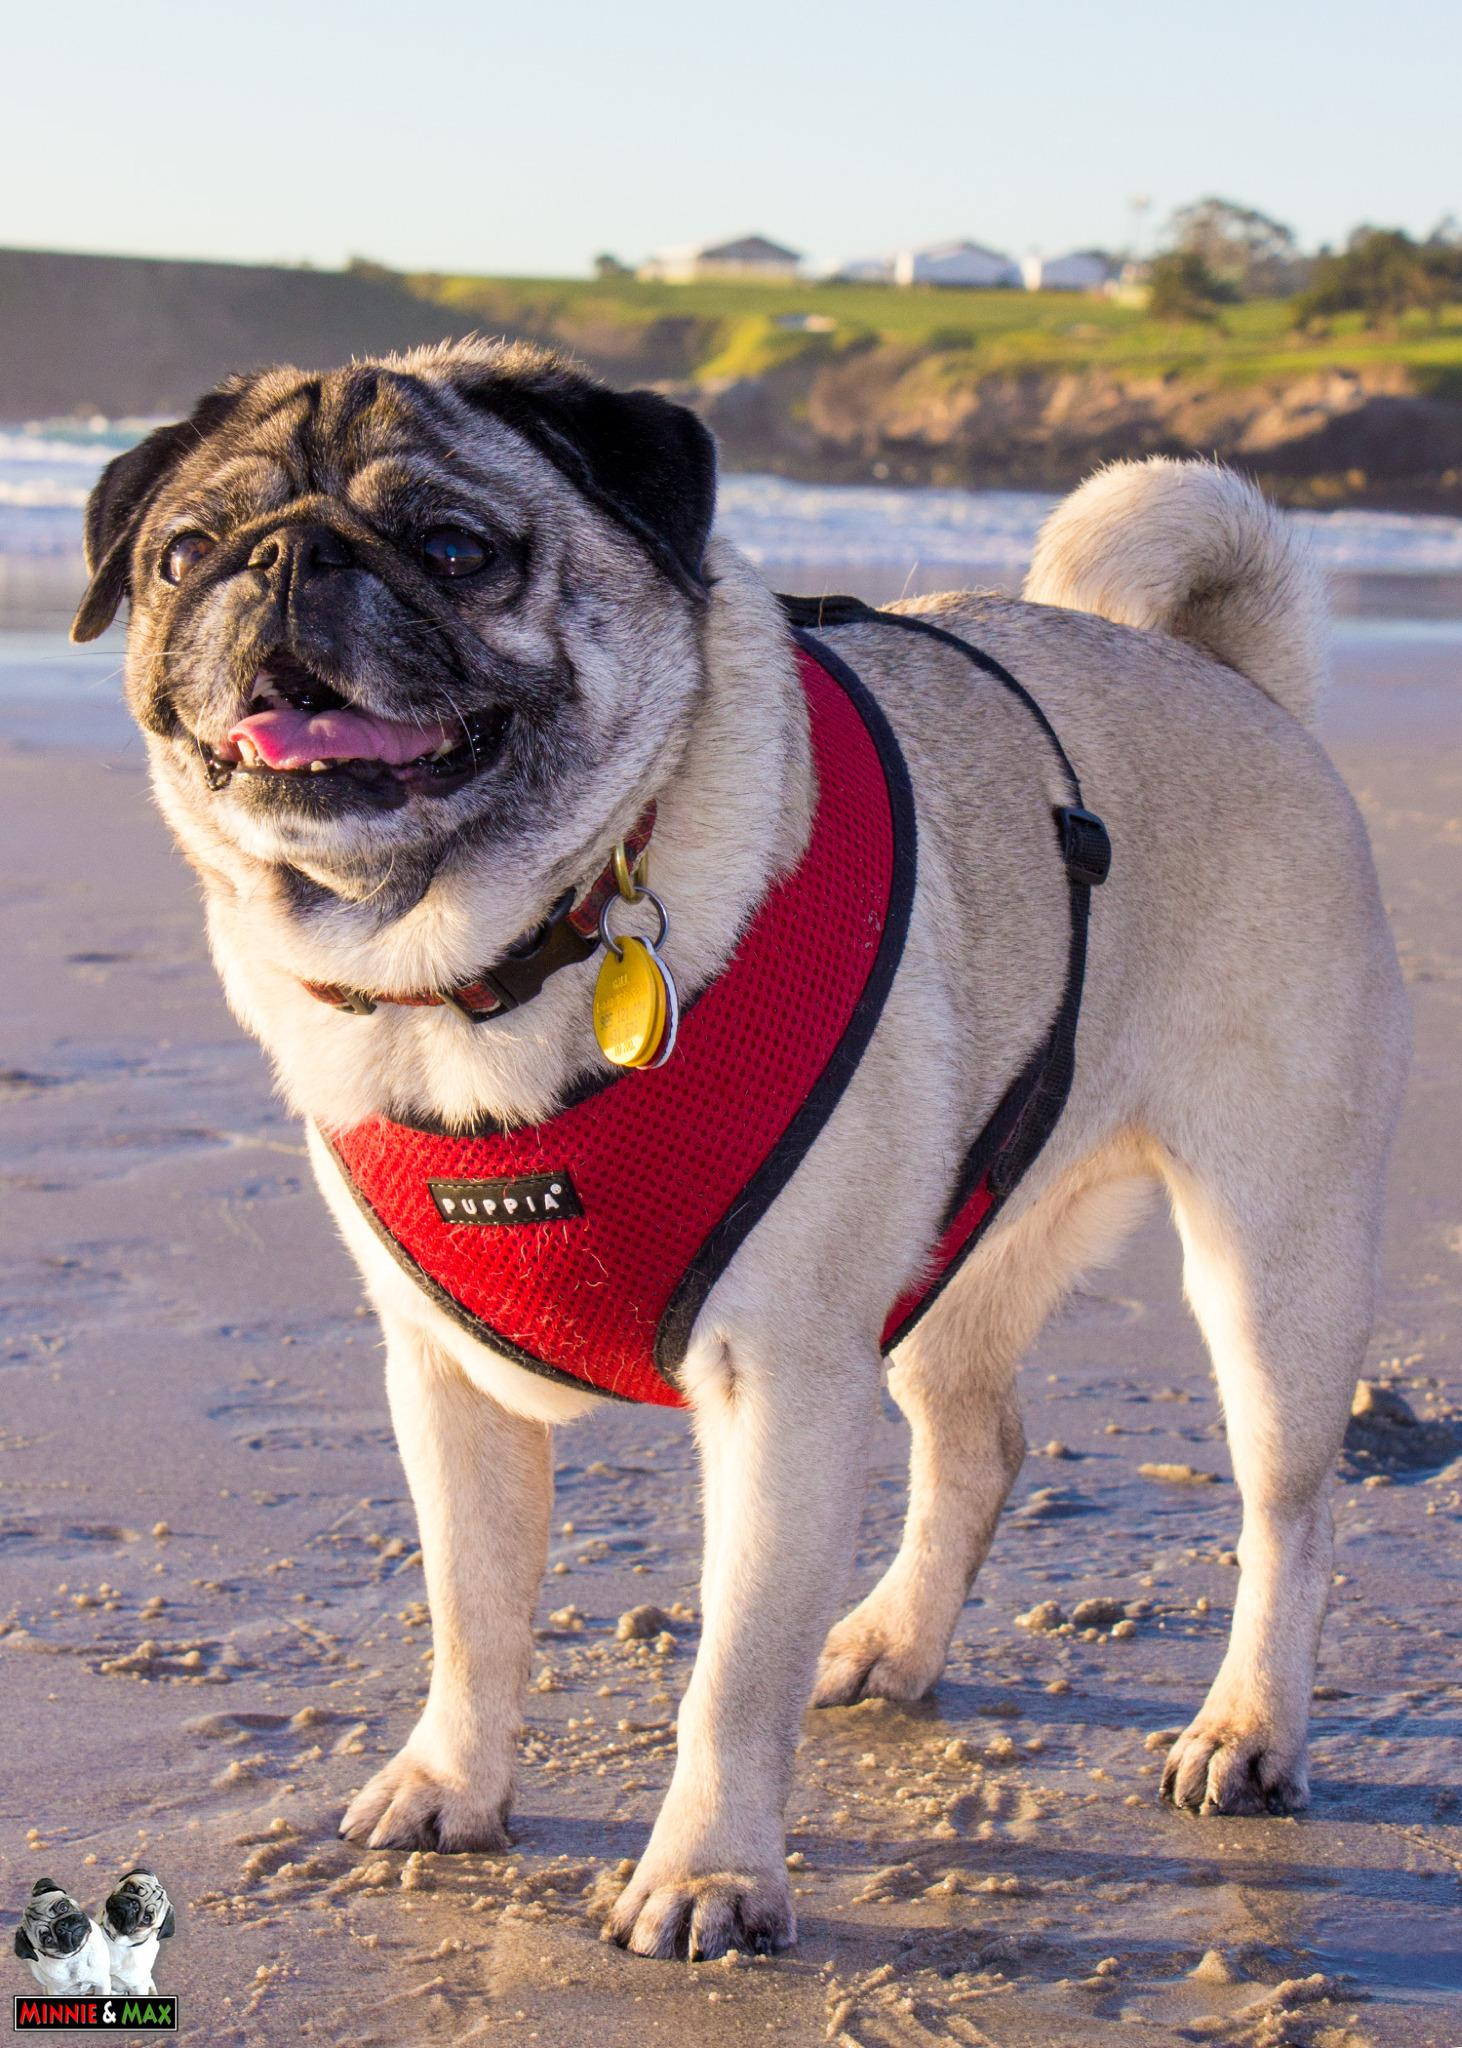 Minnie. #BeachBunny #pug http://t.co/DELJqlYJyX